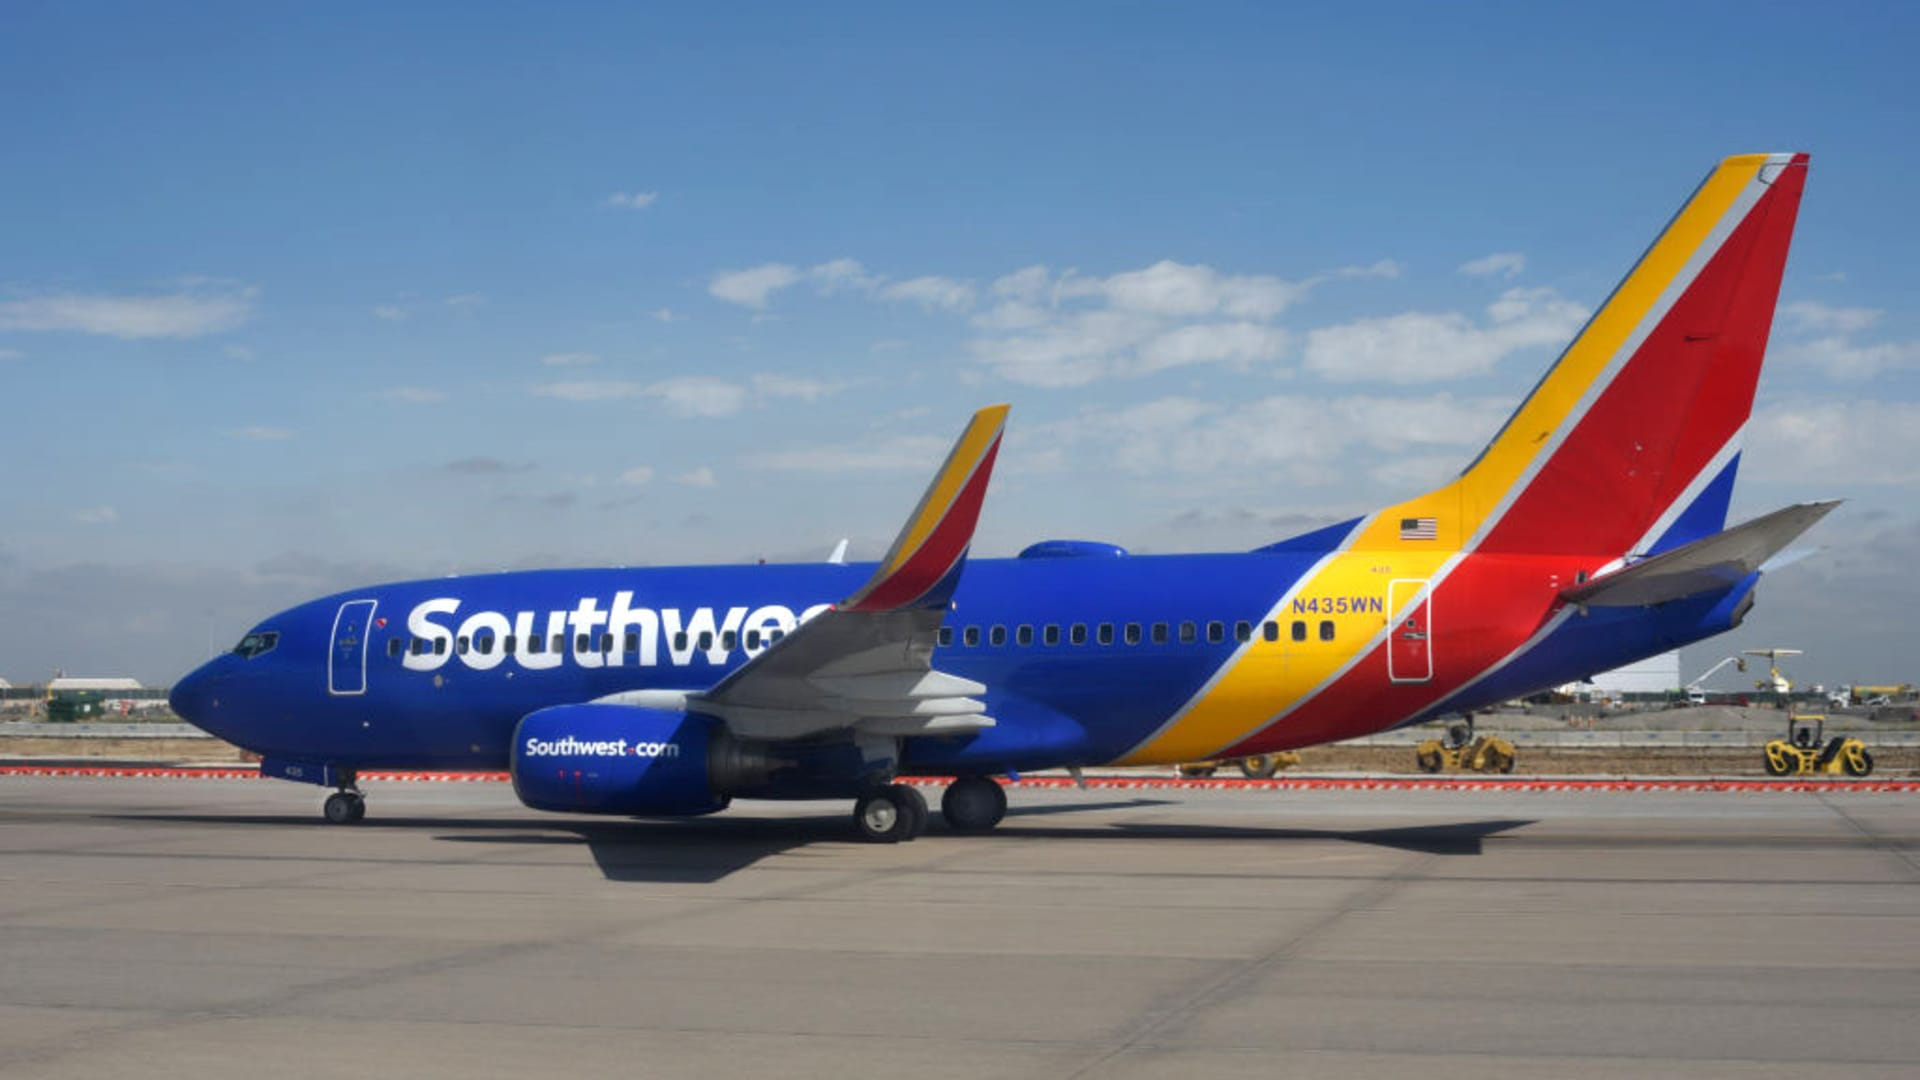 After Nearly 50 Years, Southwest Airlines Just Shared Some Very Good News